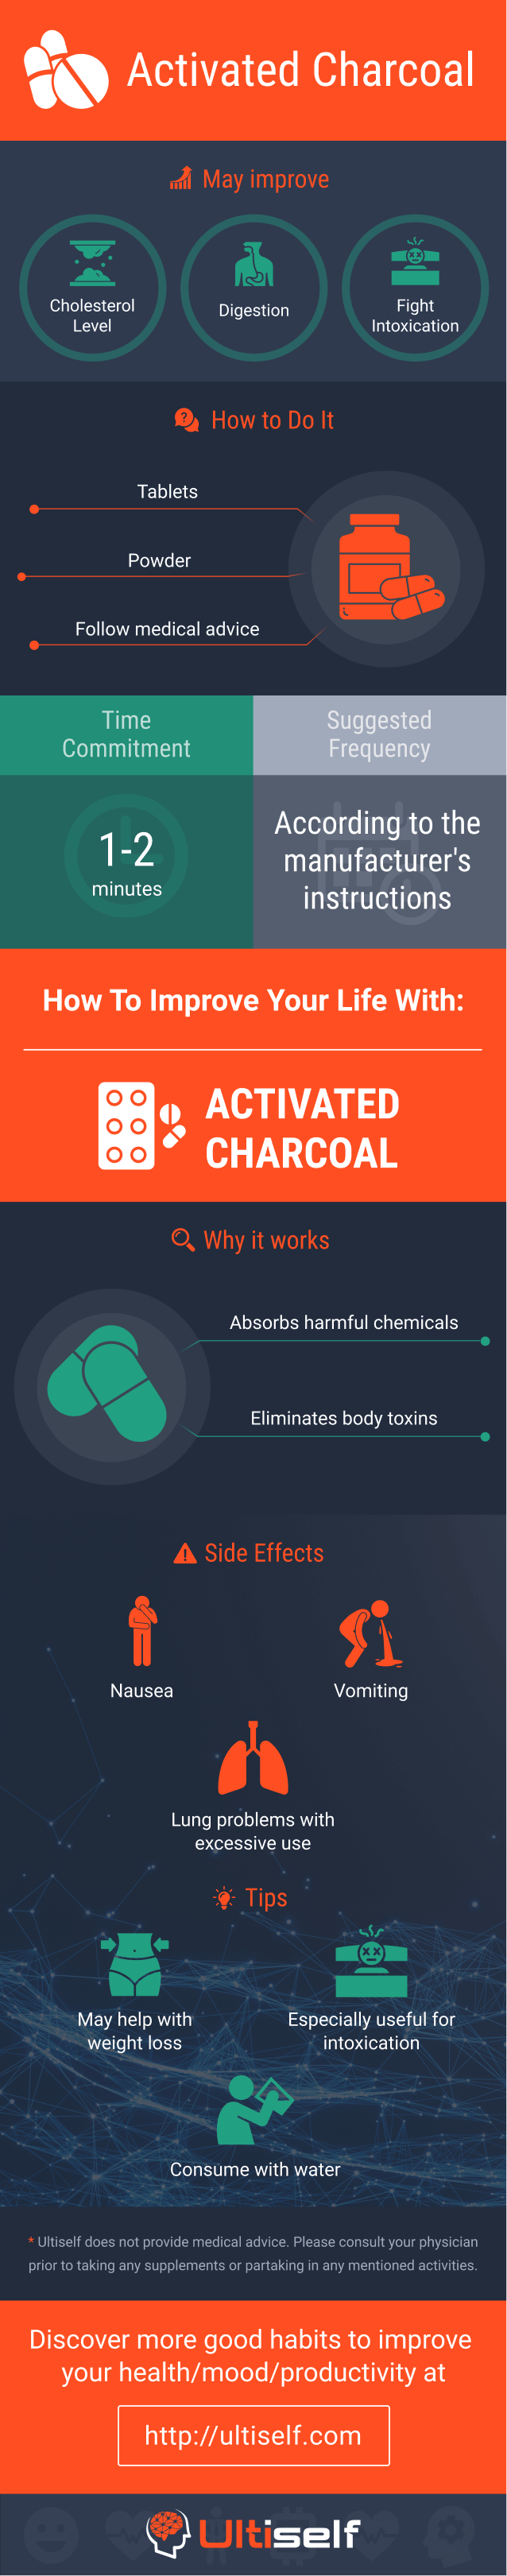 Activated Charcoal infographic